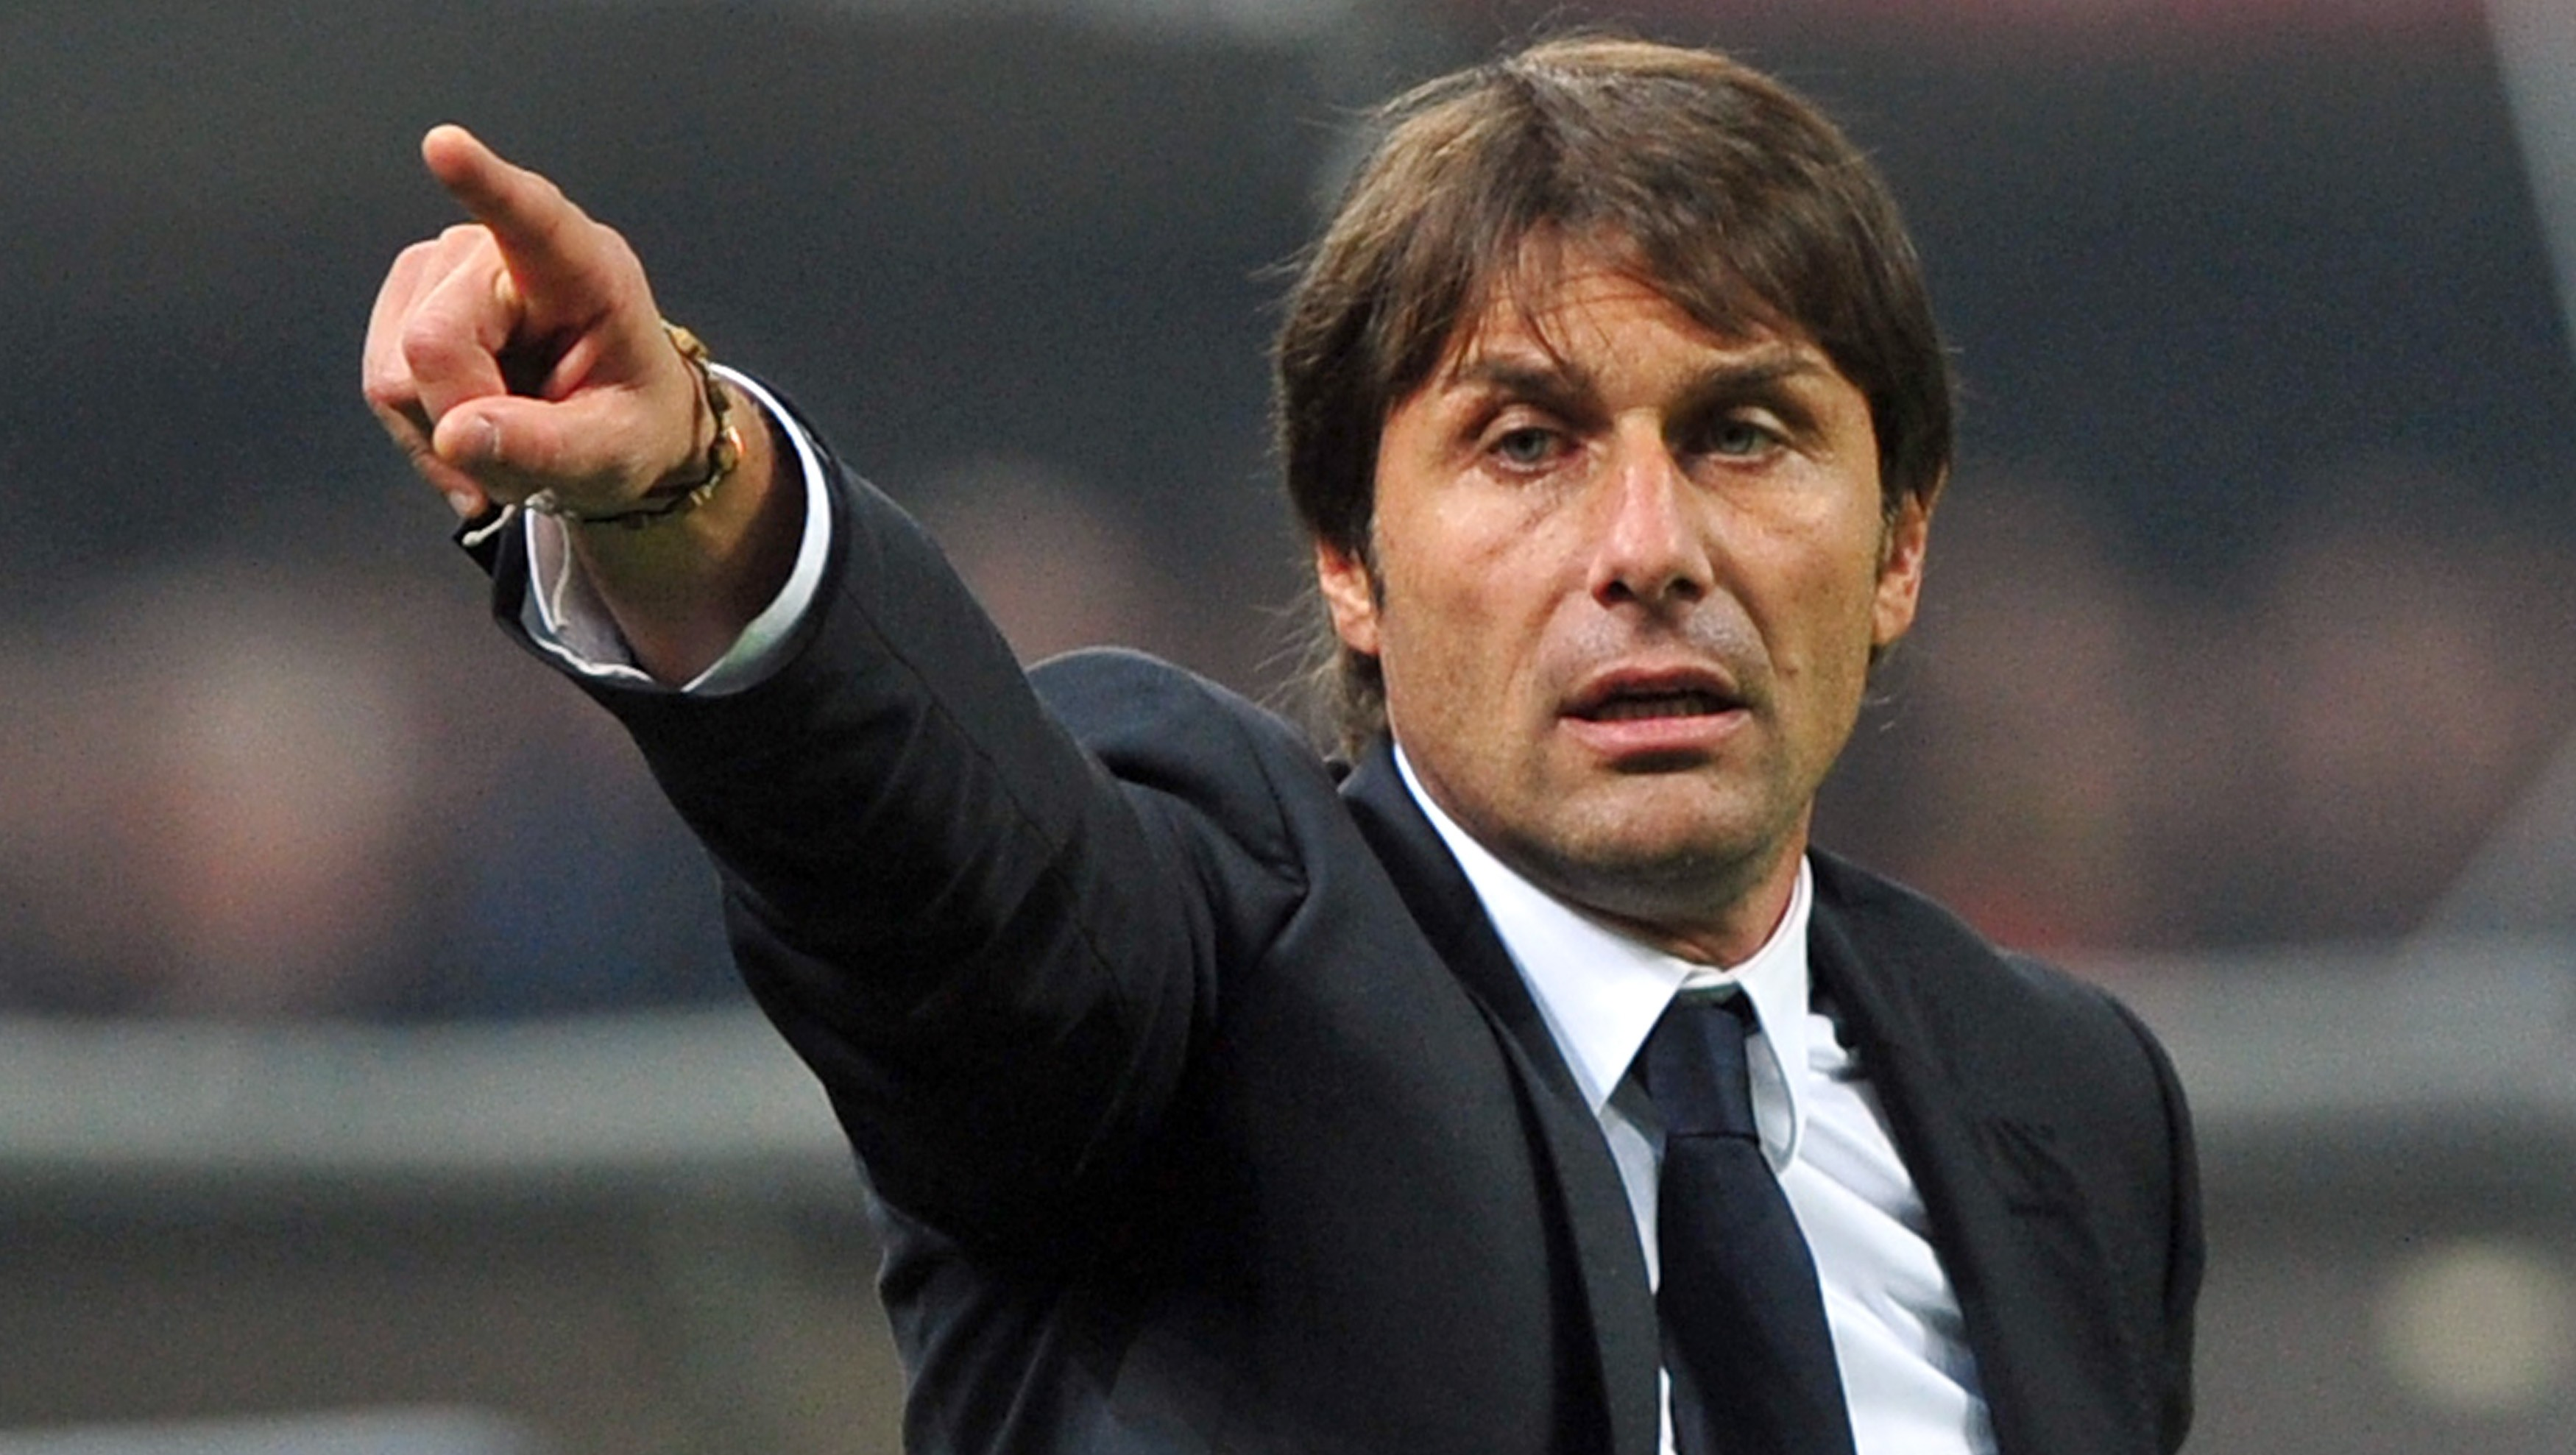 Antonio Conte wants Chelsea to win more matches